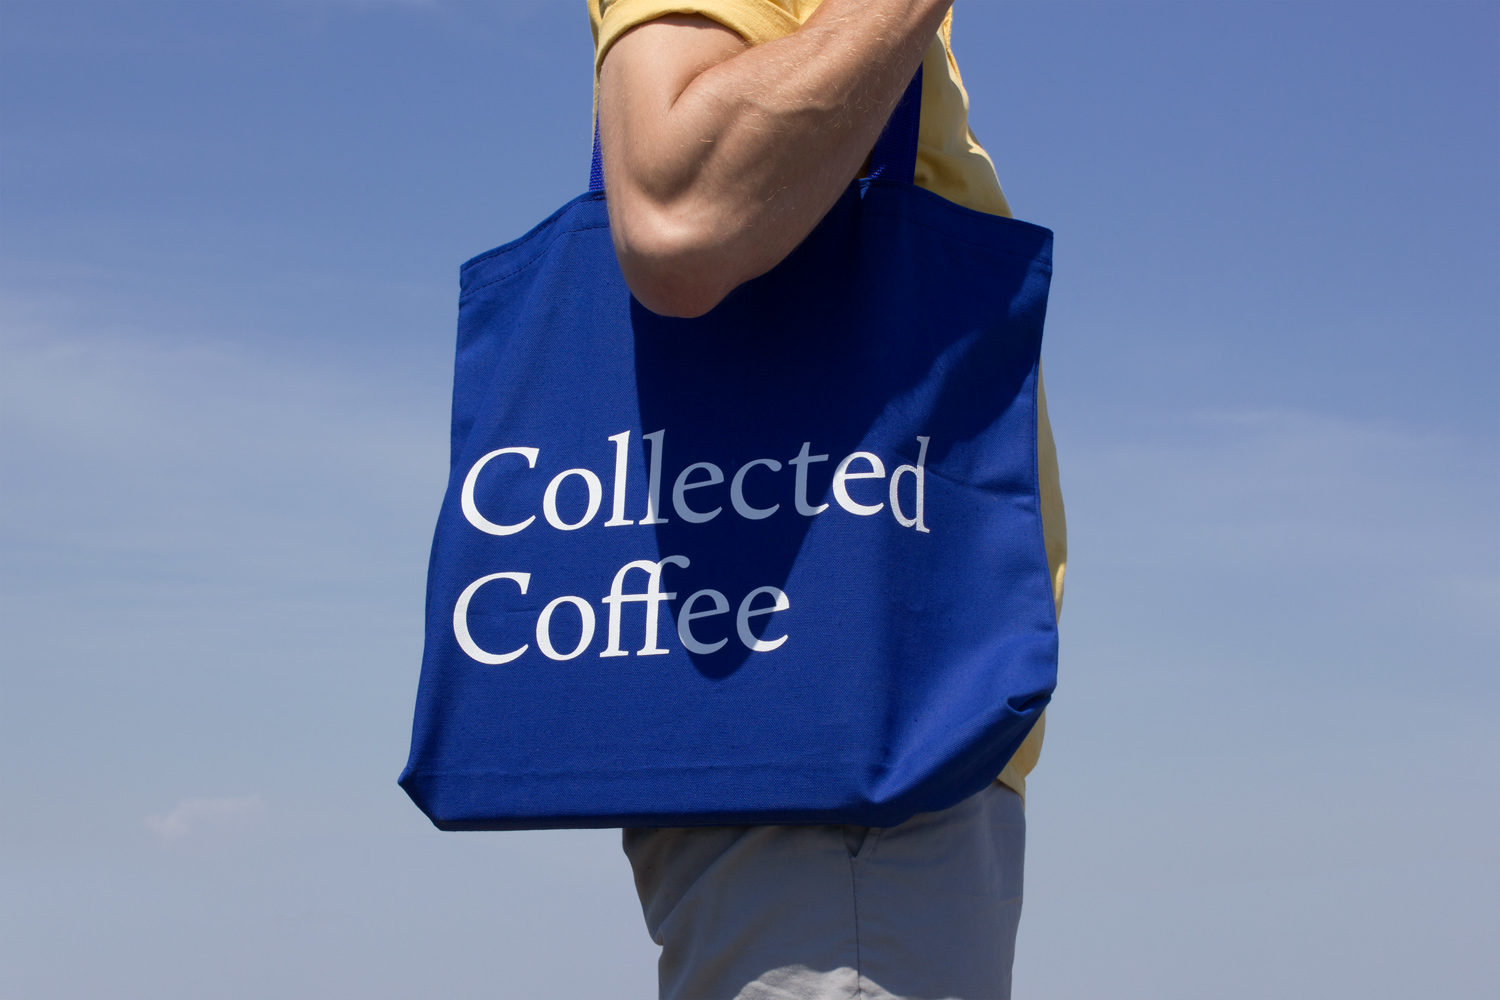 collectedcoffee-fivethousandfingers-goodfromyou-8.jpg